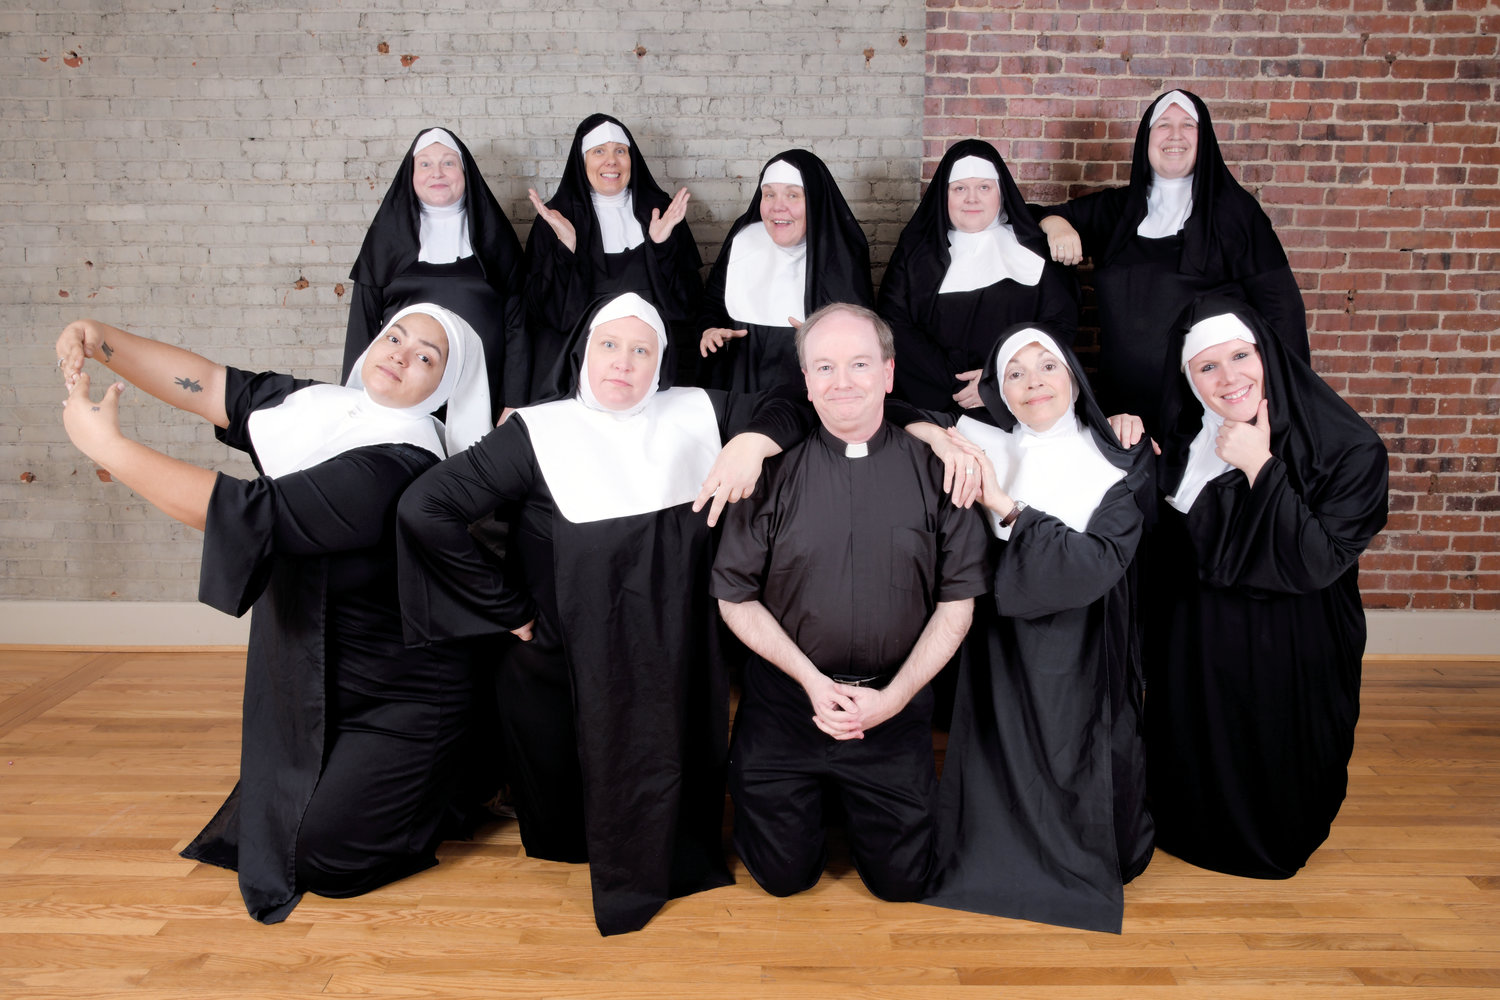 The cast of Nunsense is ready to deliver a side-splitting performance at the Kirby Theater Feb. 15-17.